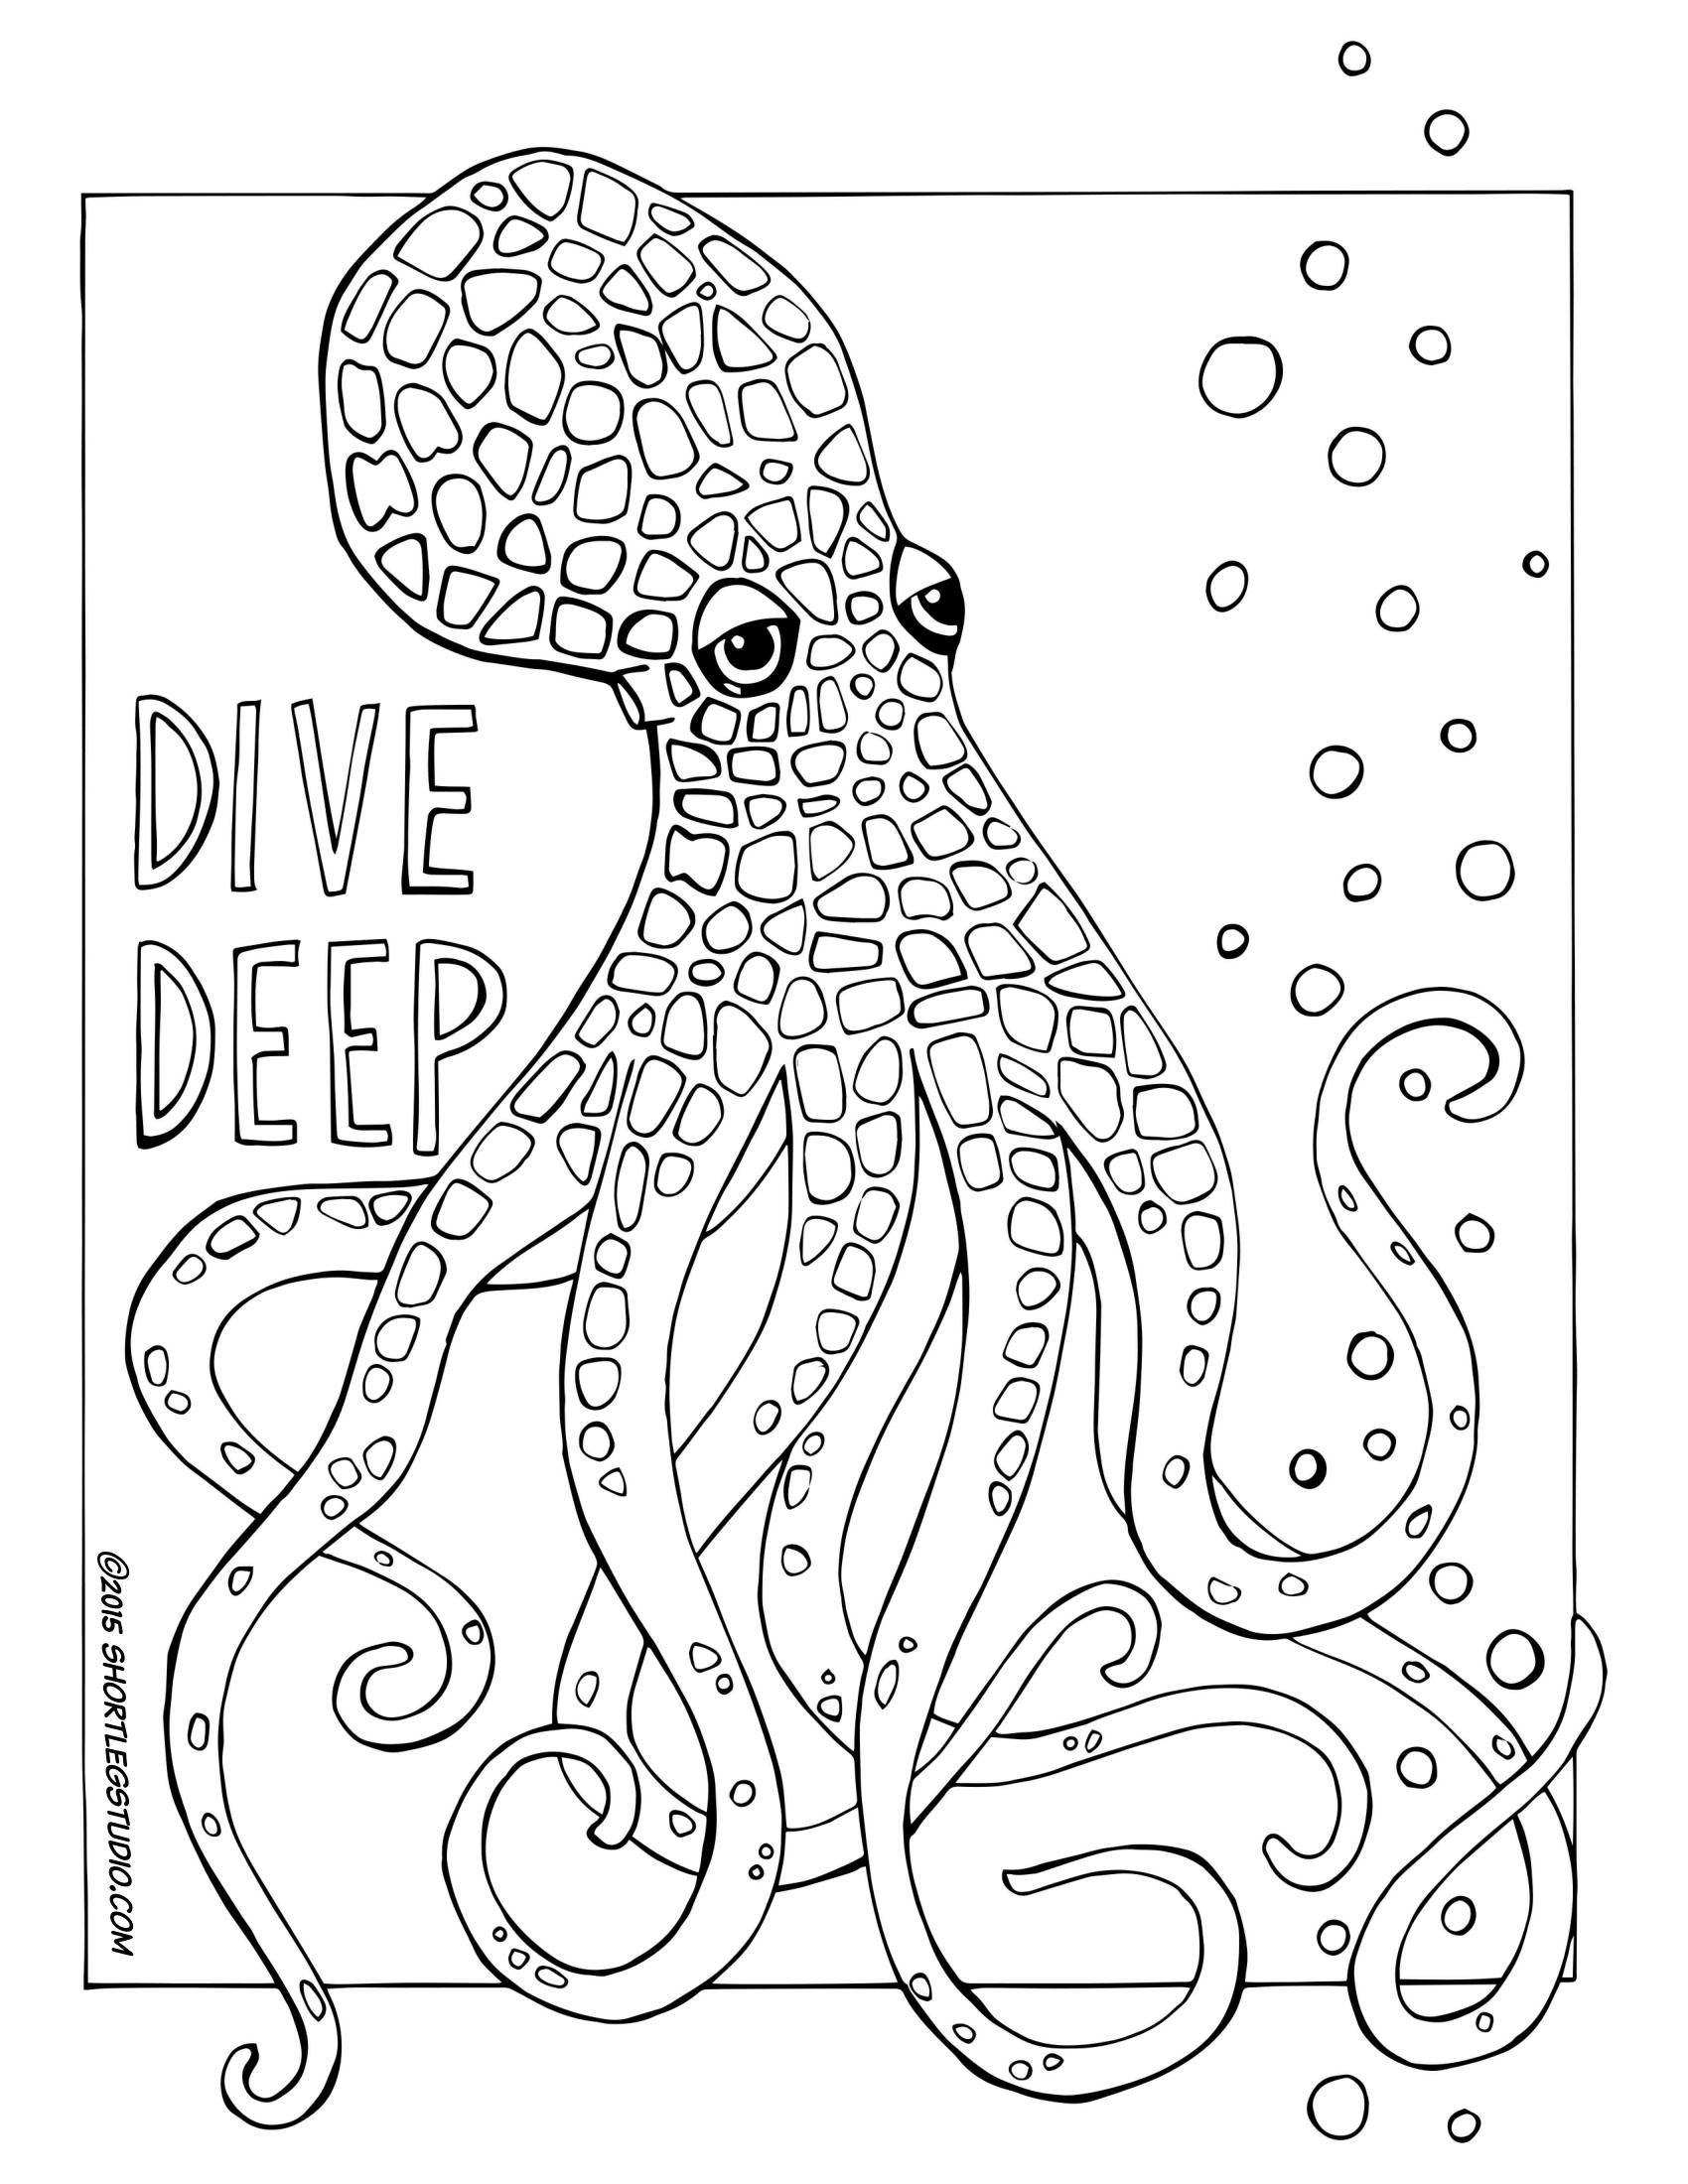 Octopus Coloring Page Octopus Coloring Page Meditative Coloring Coloring Pages